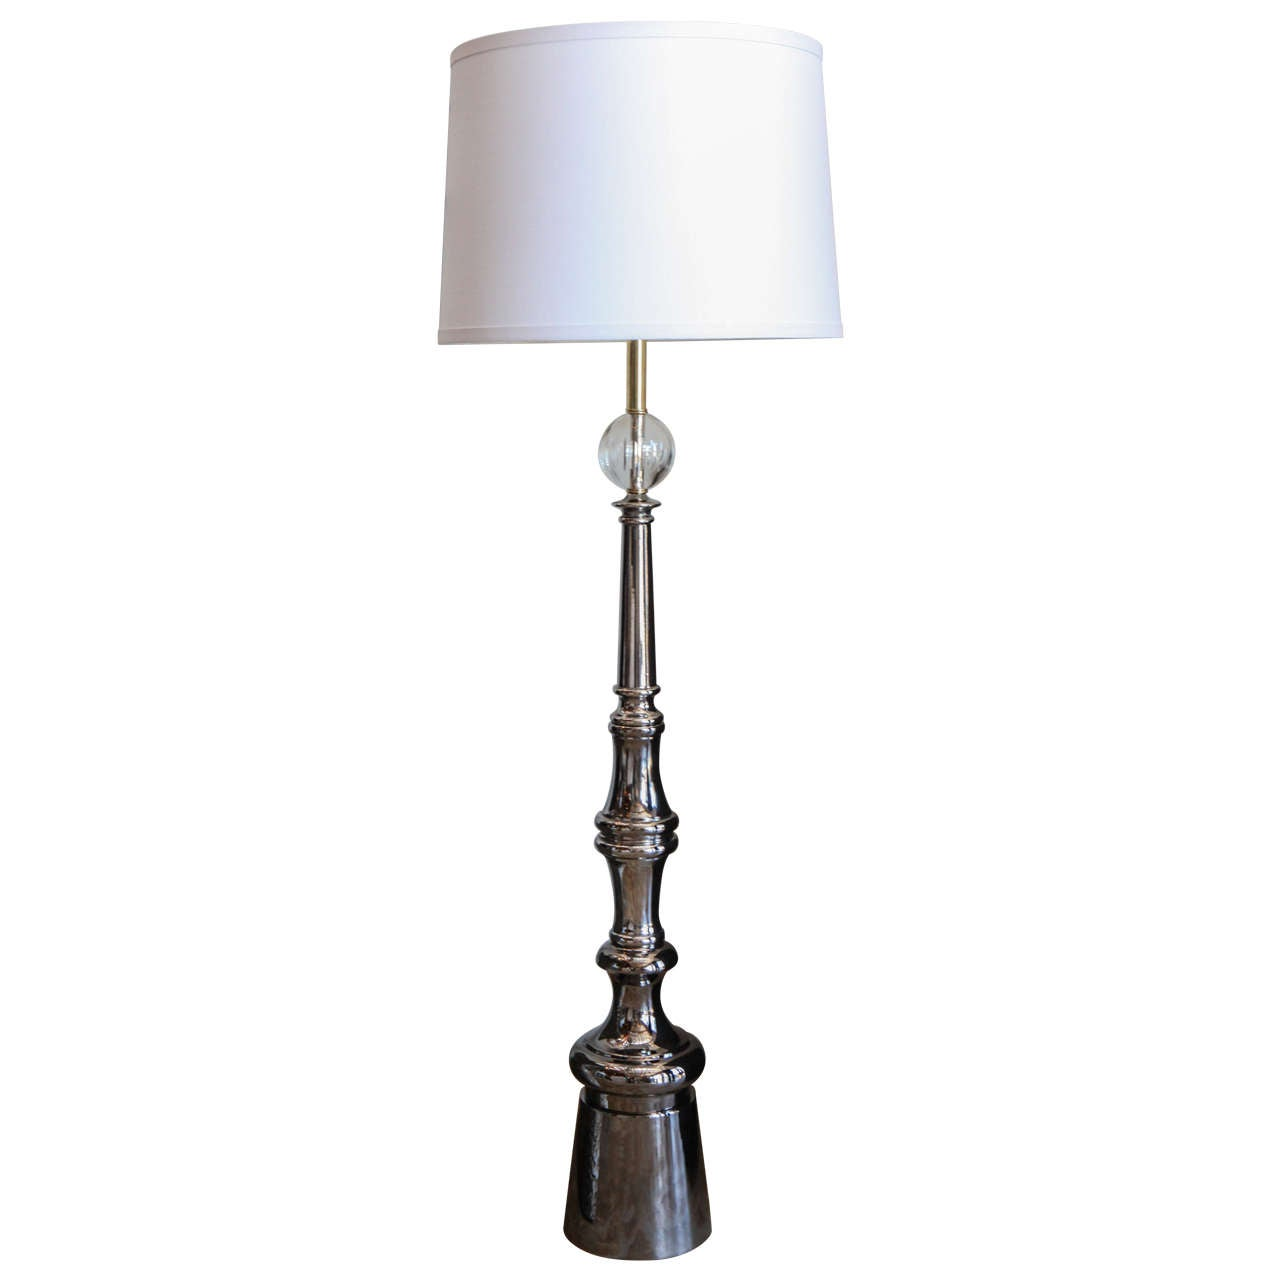 Mid Century Modern Black Nickel And Crystal Floor Lamps At